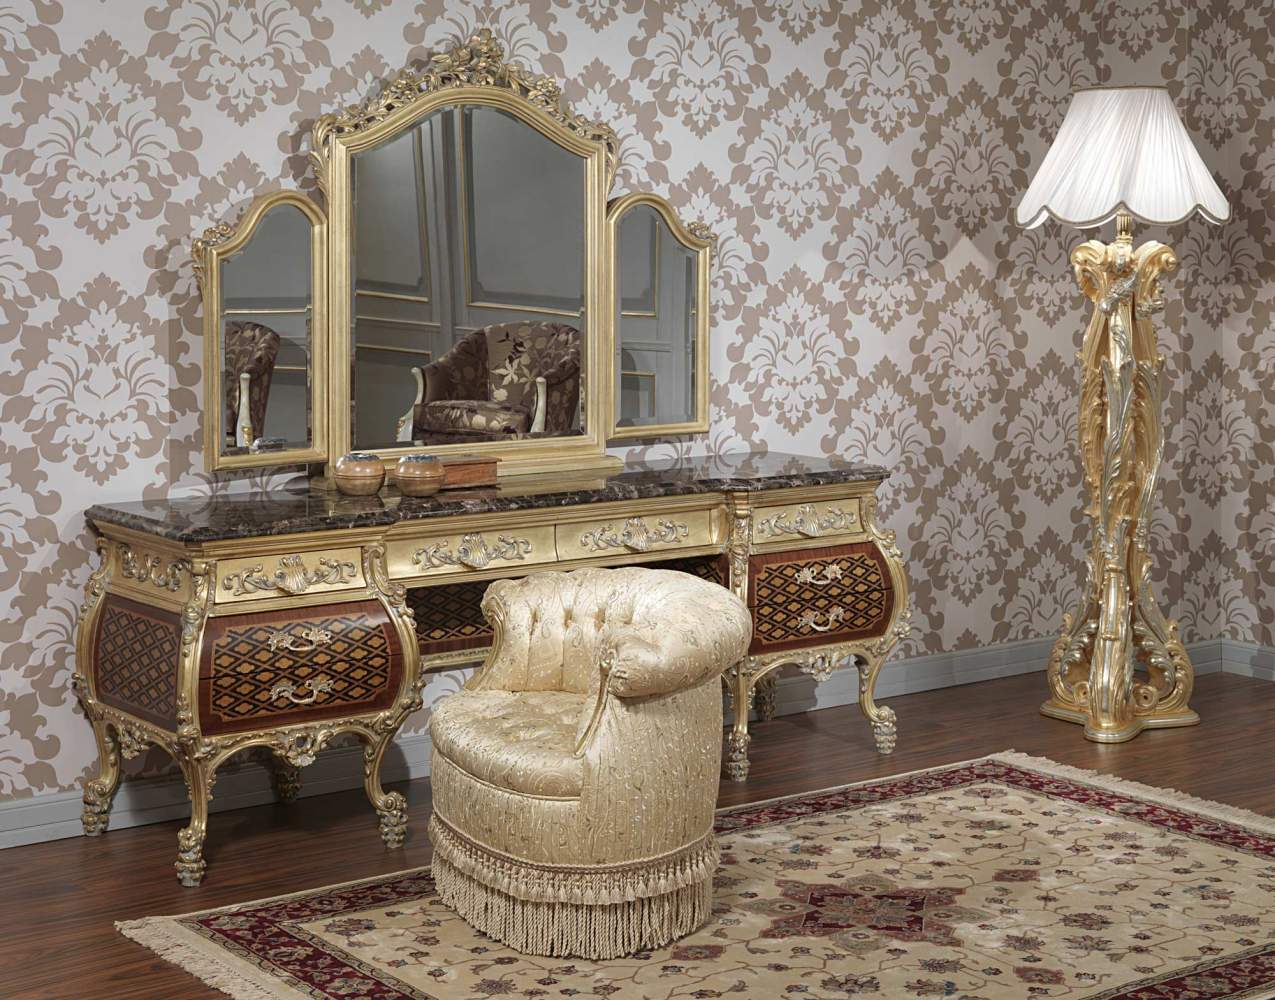 Elegant Furniture For Bedroom Emperador Gold Art 397 931